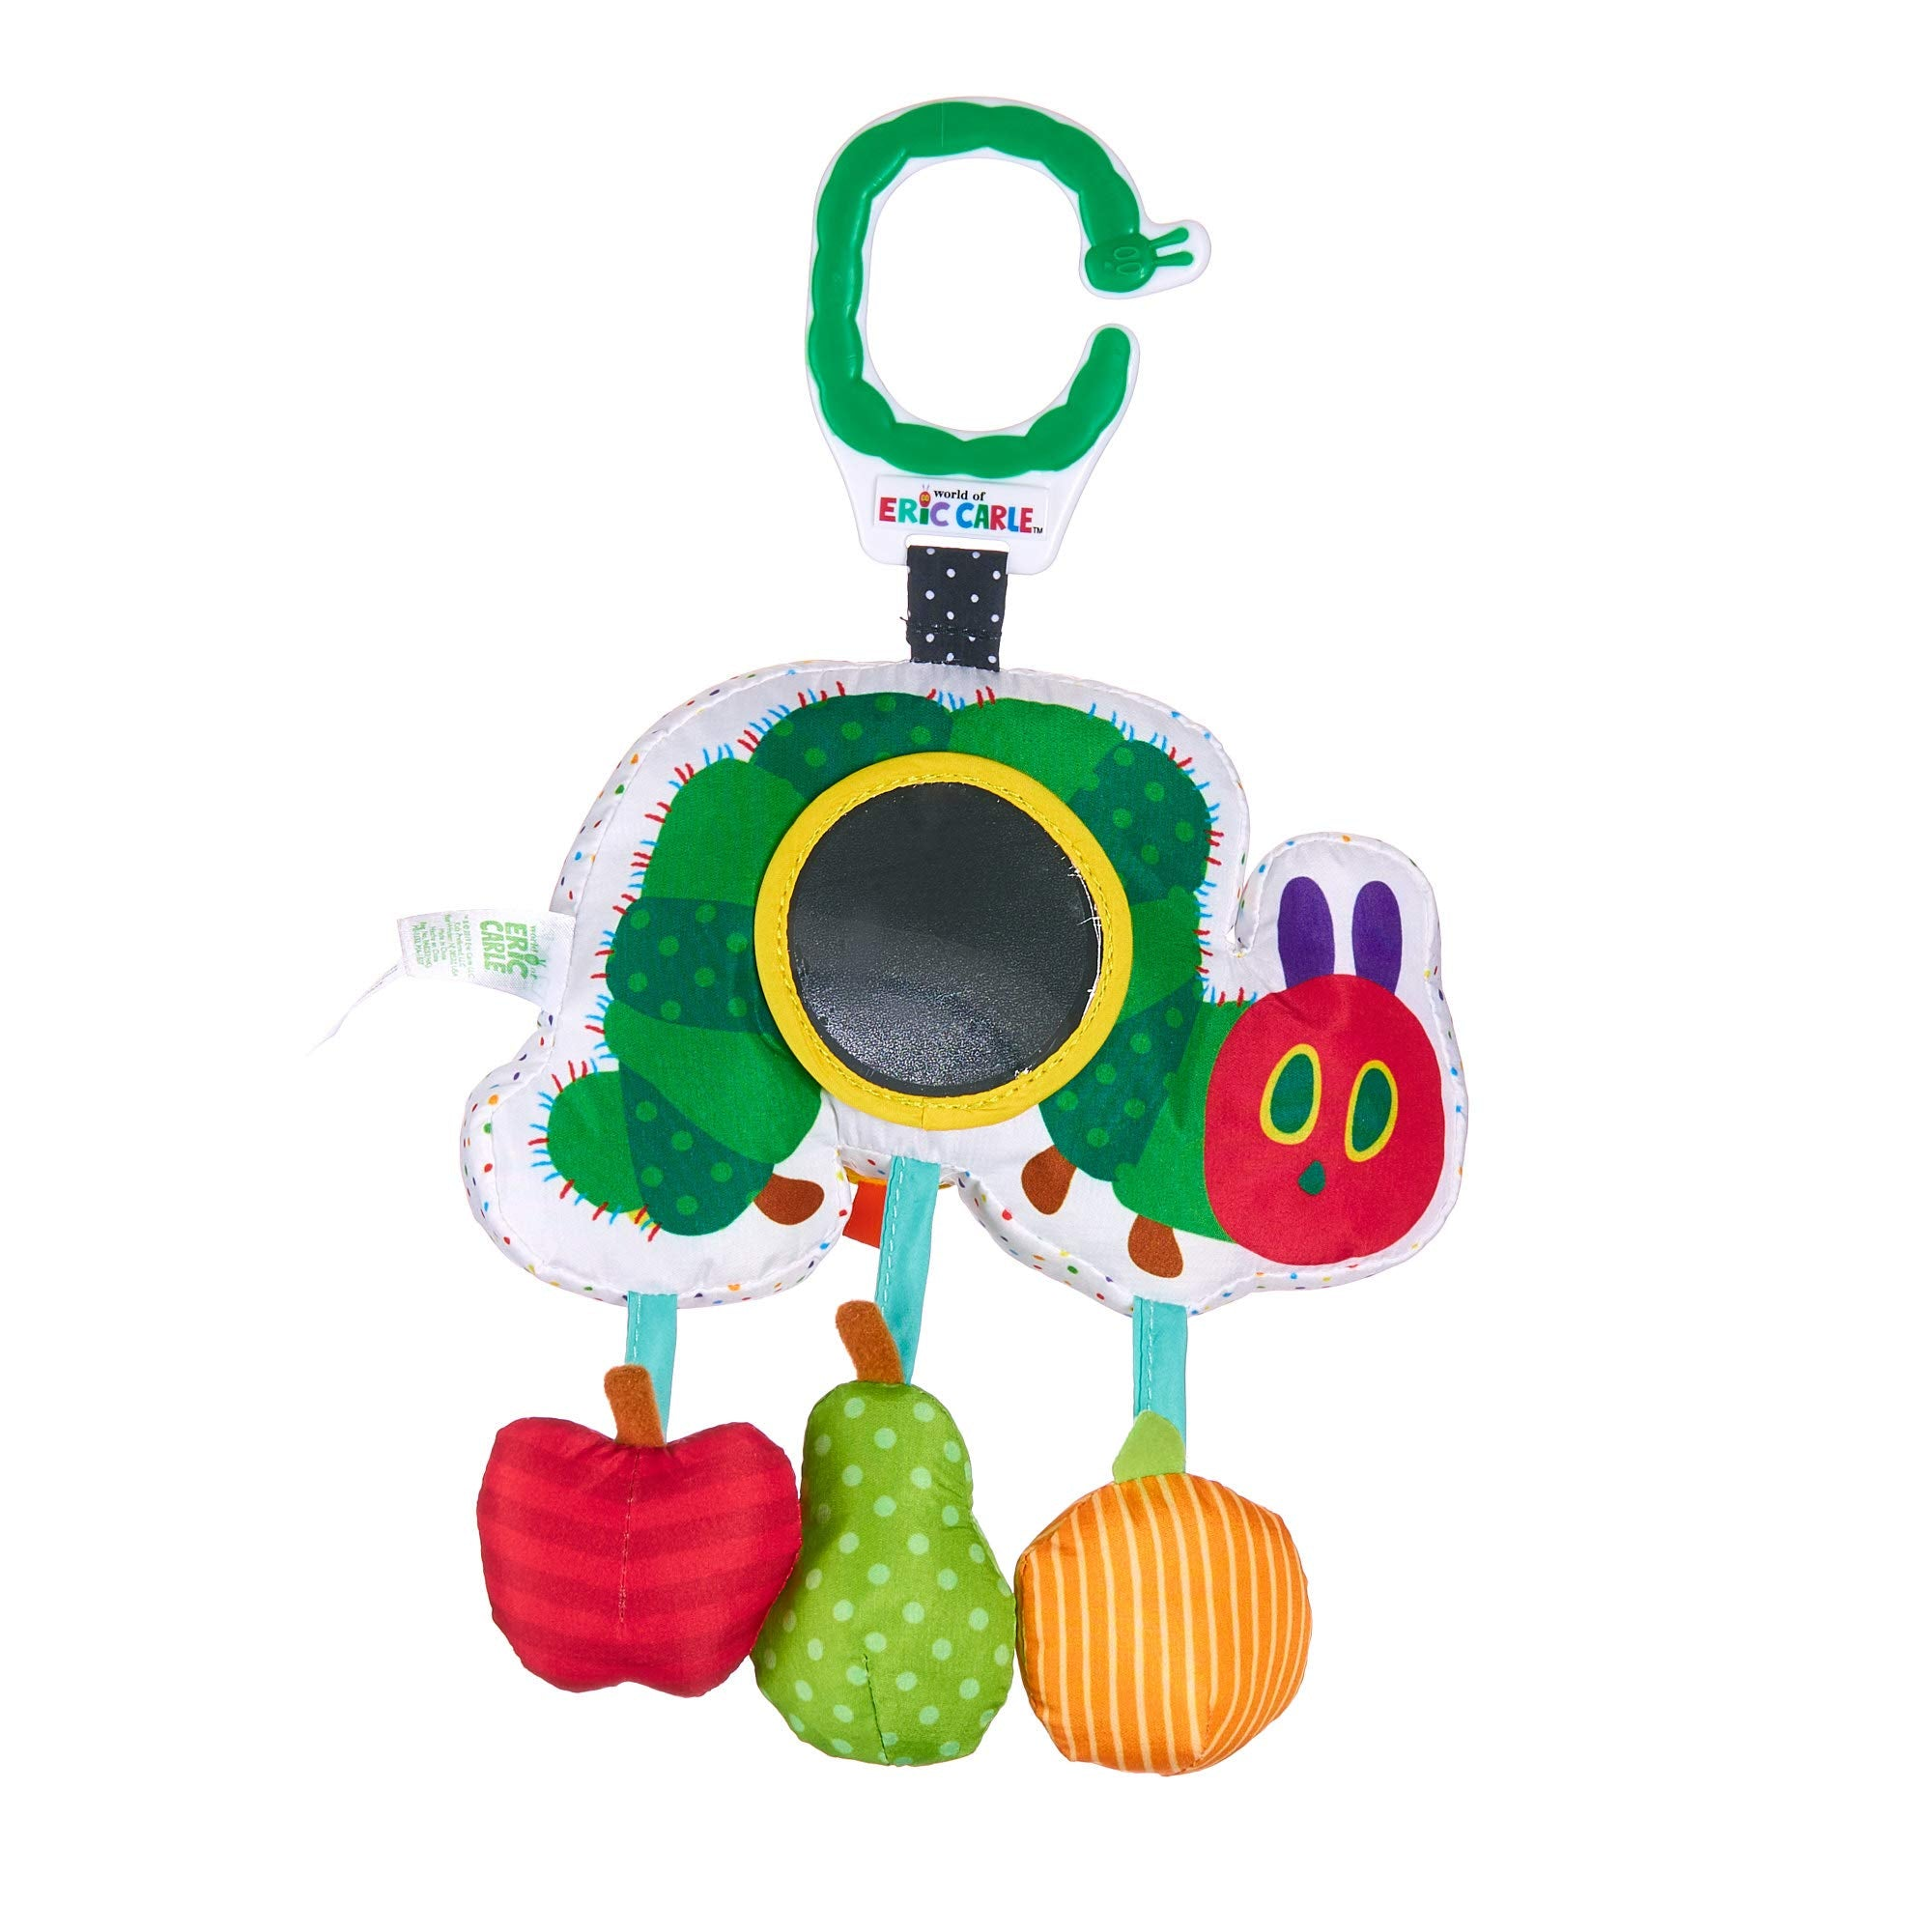 Caterpillar Rattle Squeak Mirror Activity Toy For Babies